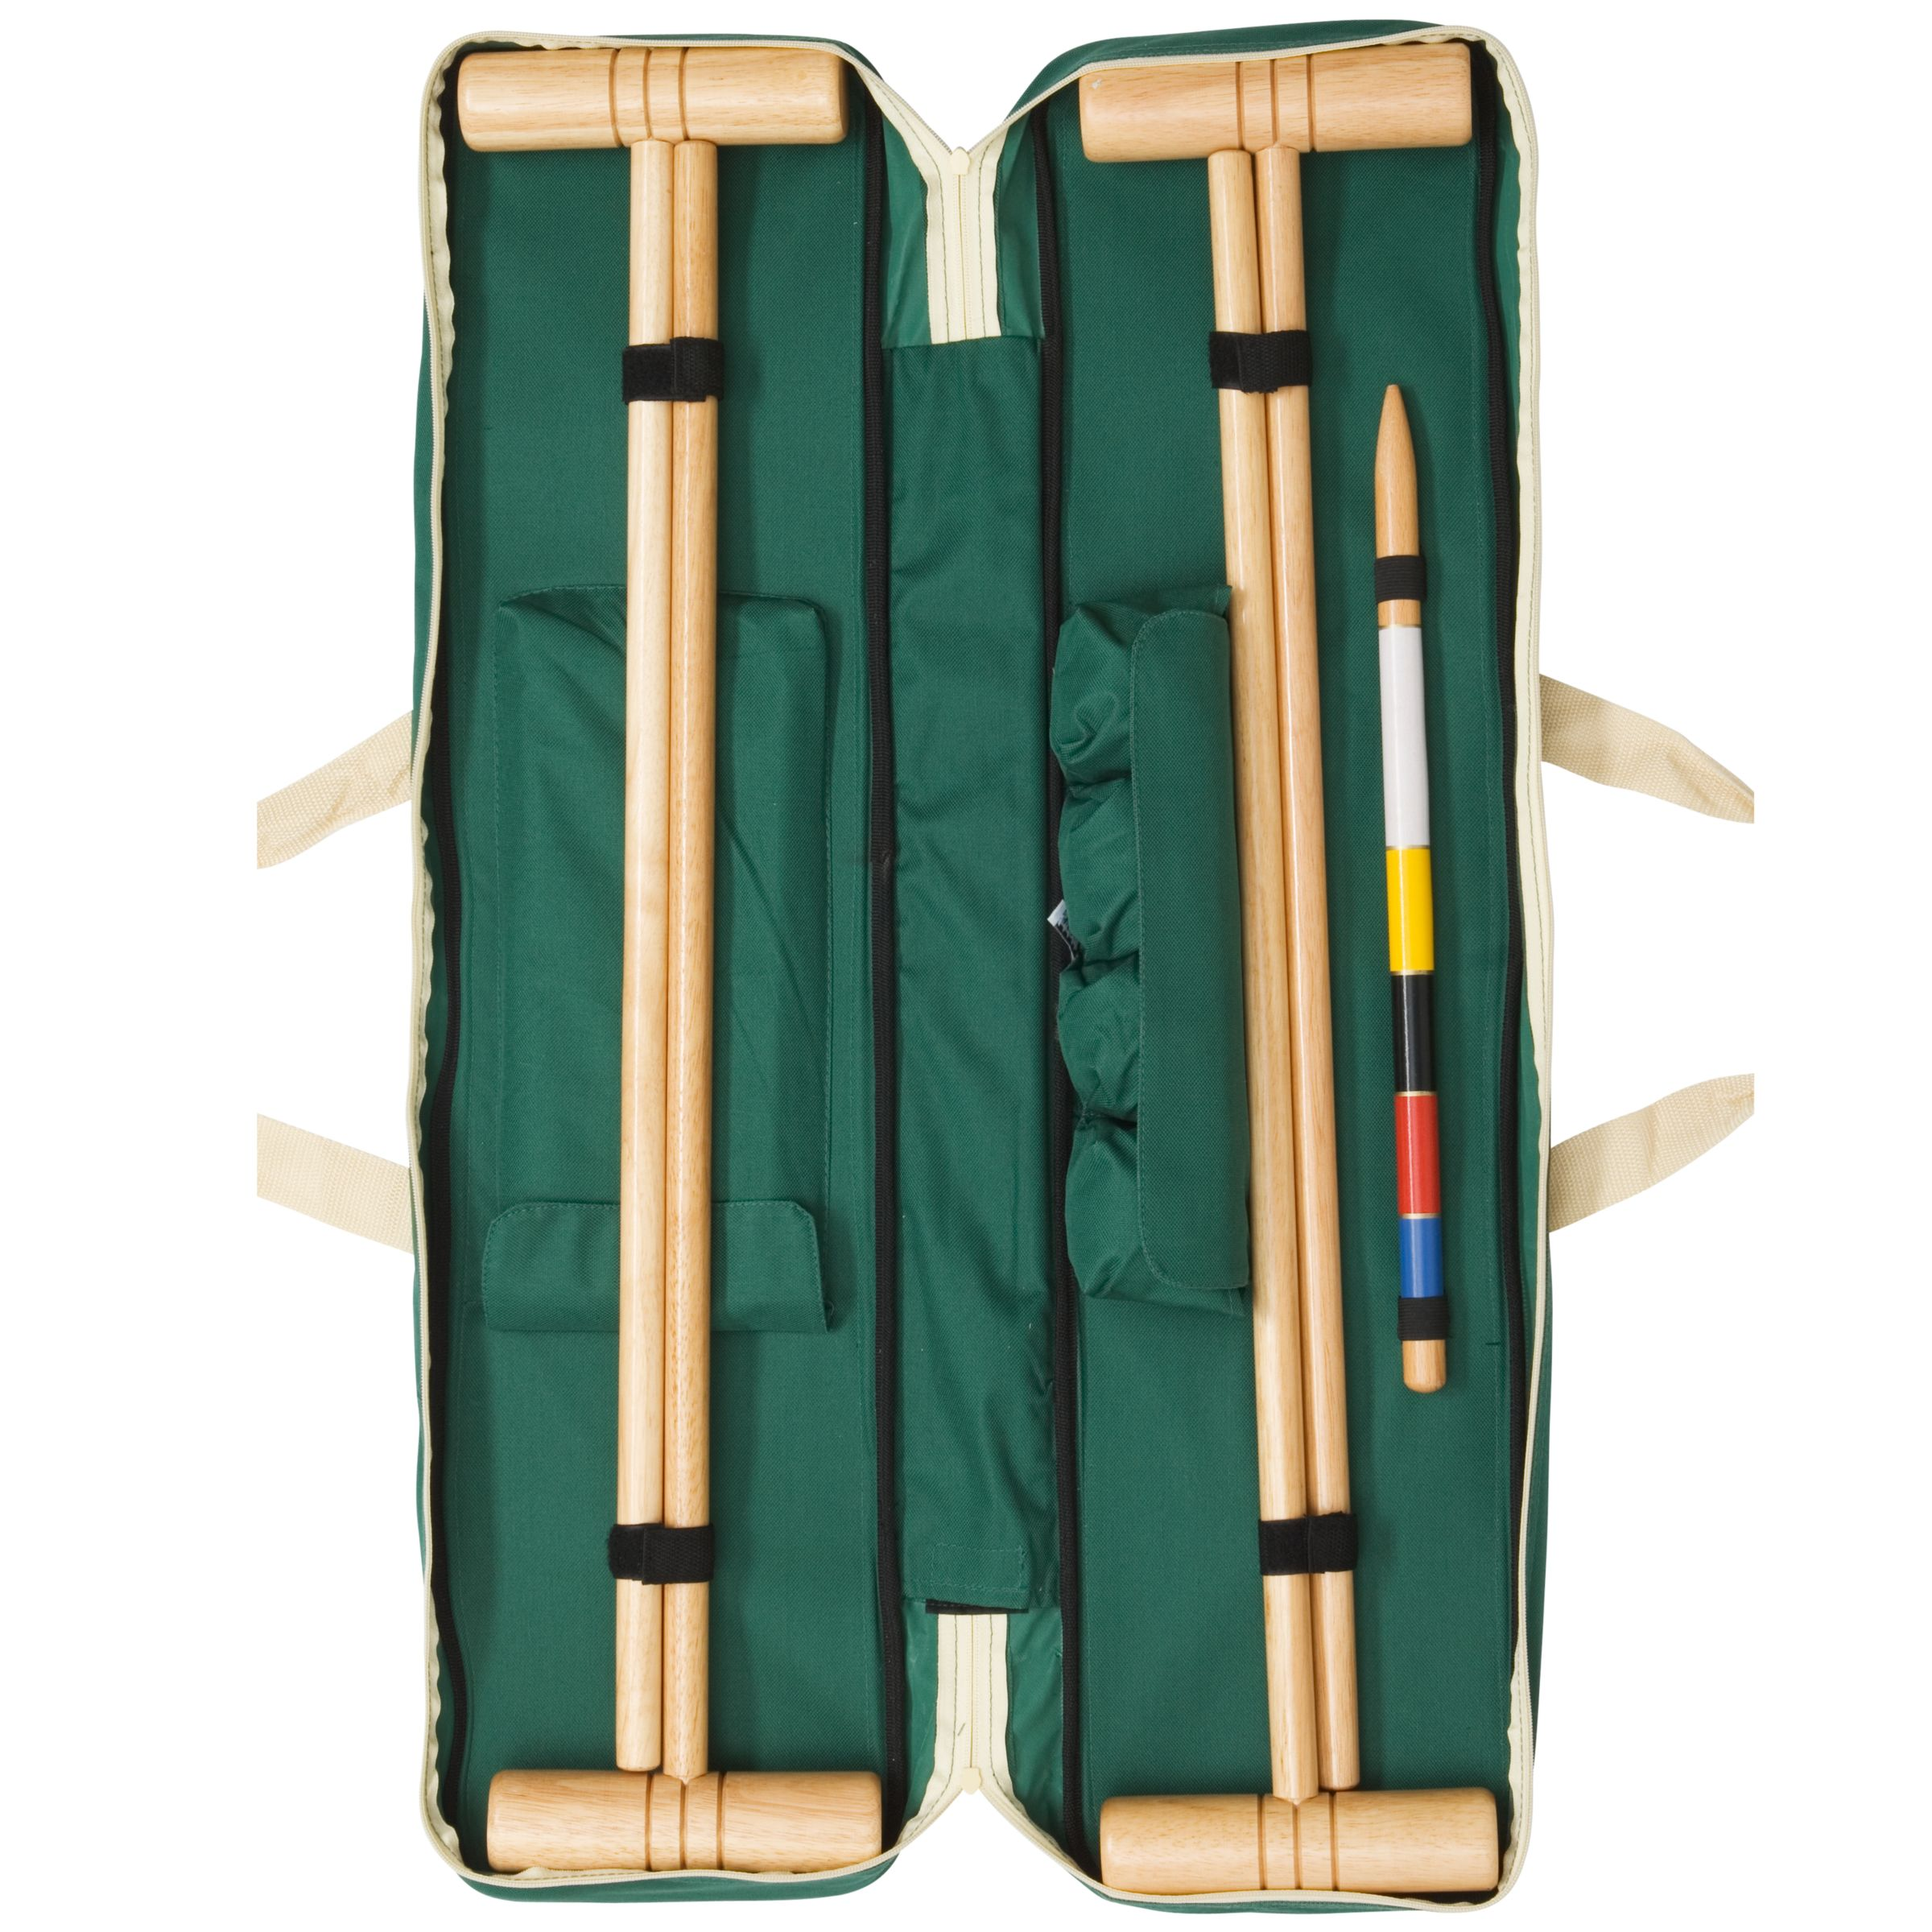 Jaques Playmate Junior Croquet Set